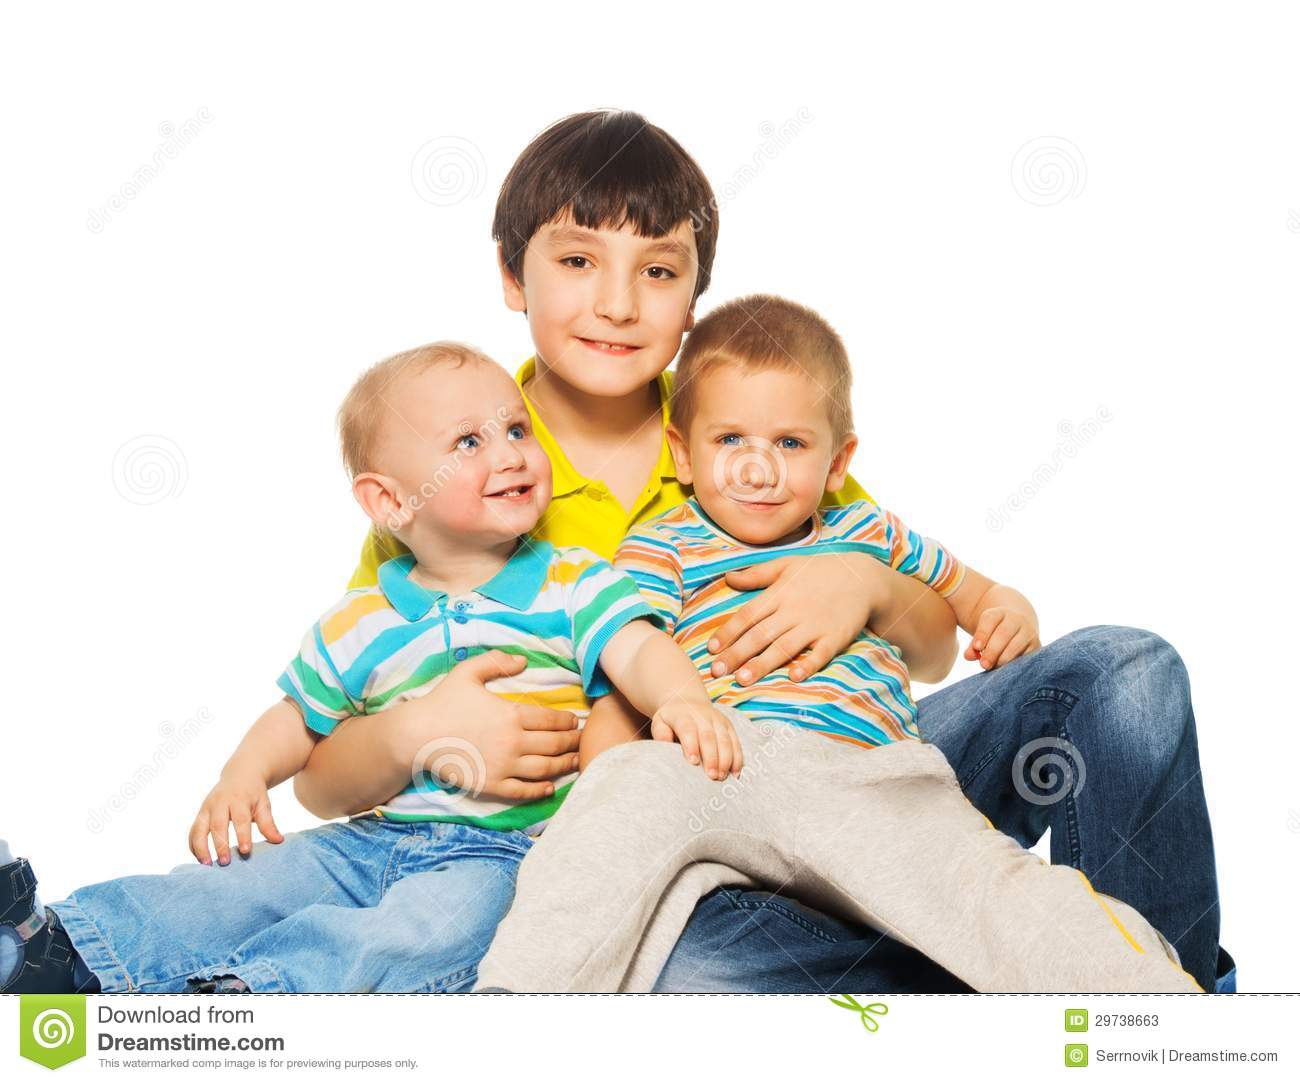 Bigger Brother With Younger Stock Image - Image Of Care, Family 29738663-7866